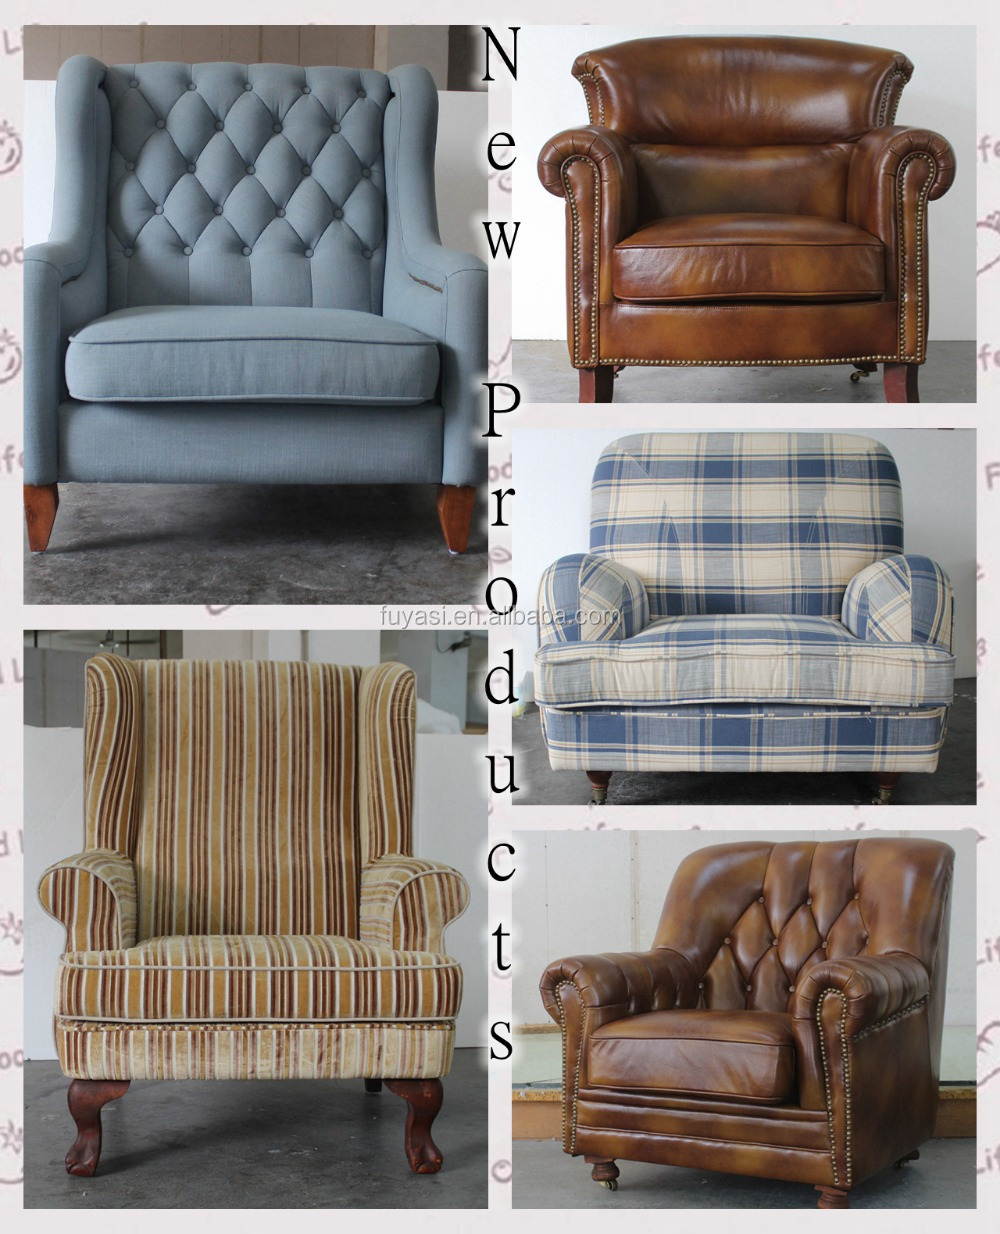 European style in movies genuine leather italian modern sofas boss chair king and queen chairs china